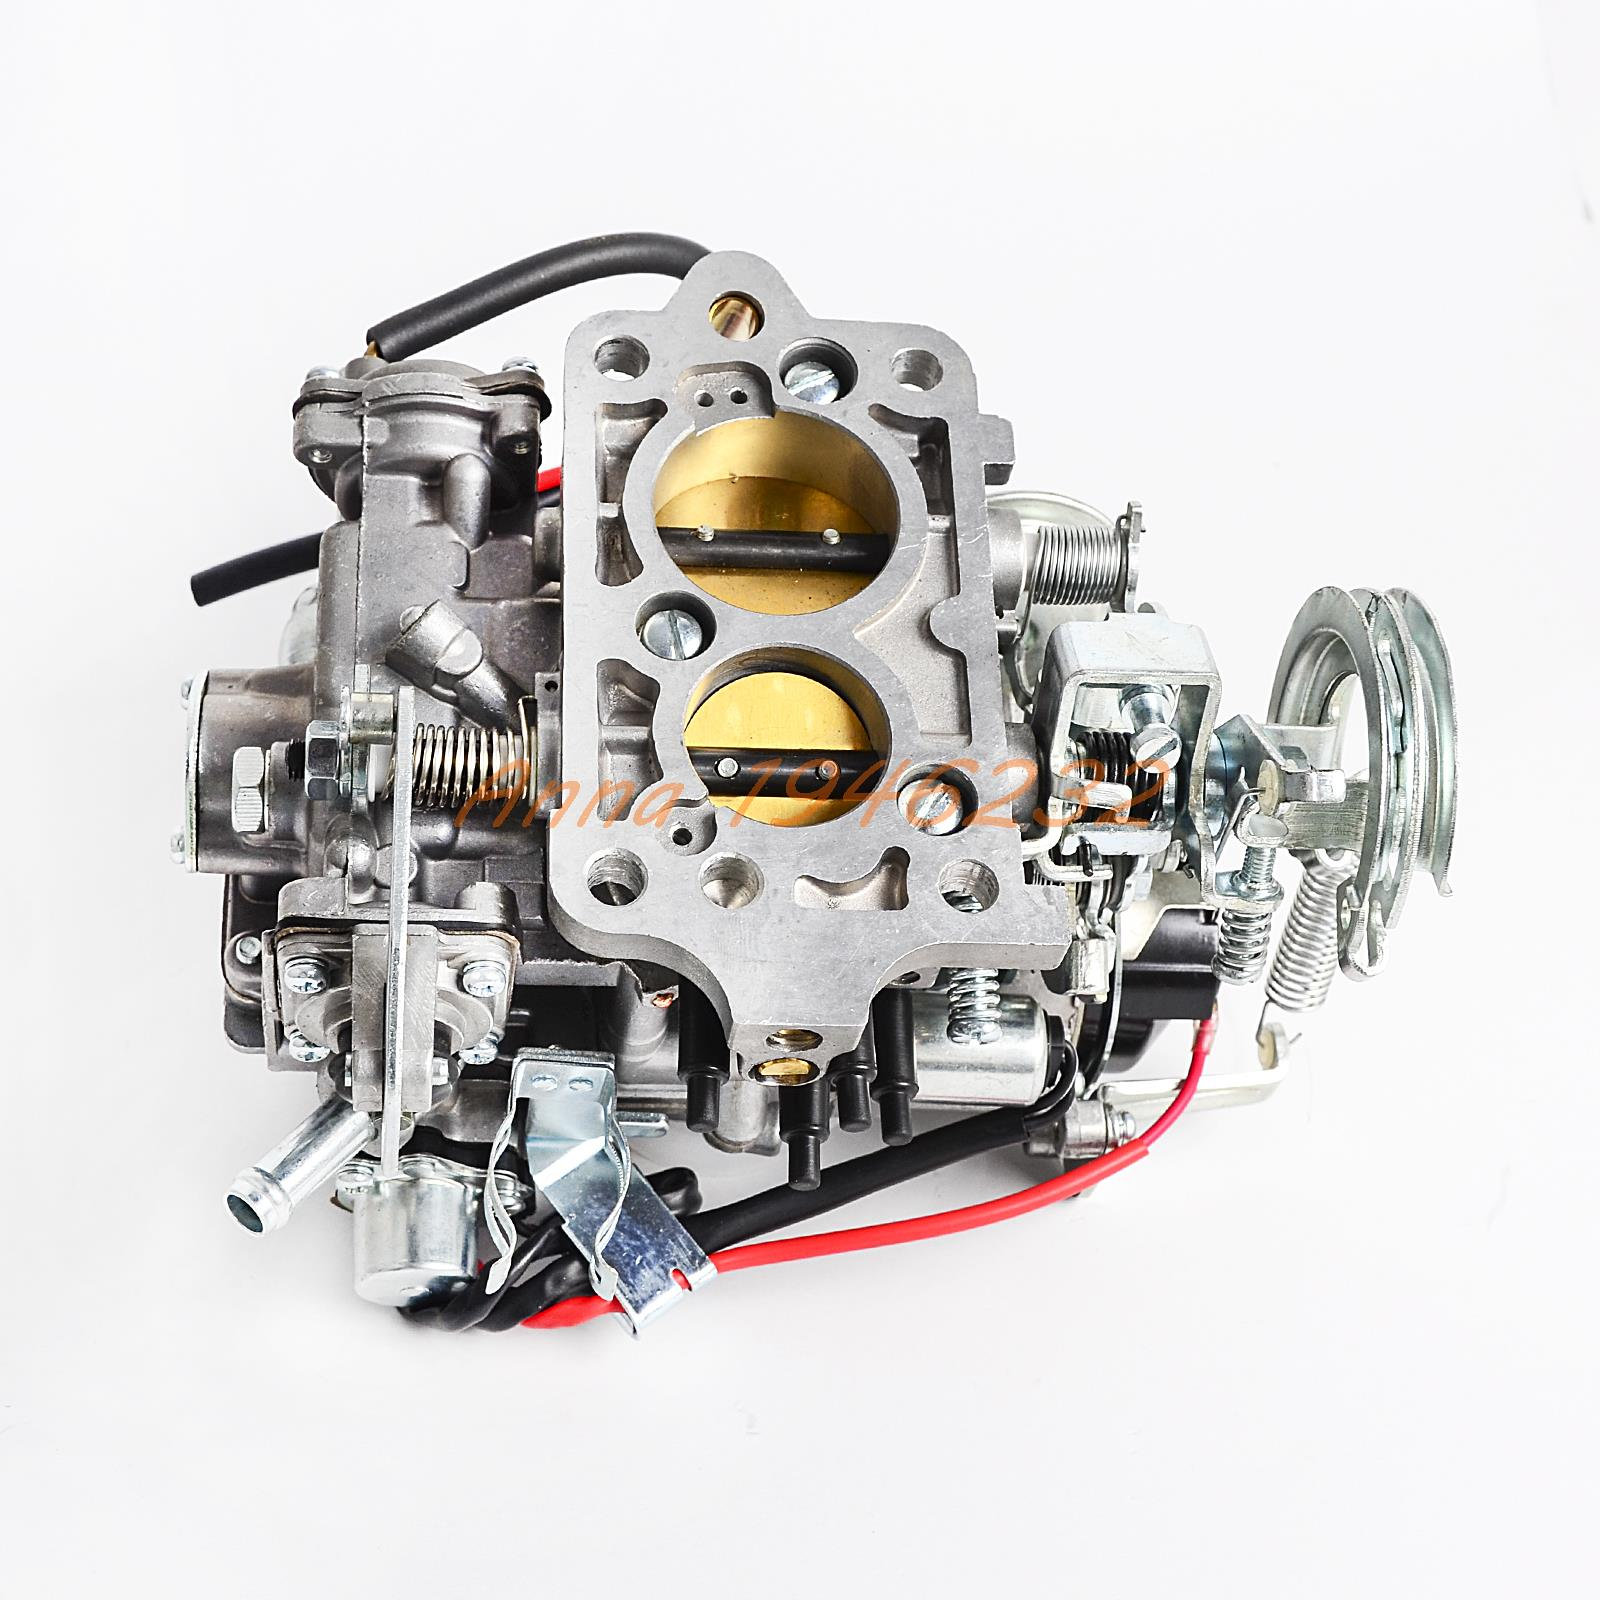 New High Quality CARBIE CARB Carby Carburetor for TOYOTA 4 RUNNER HILUX 21R 22R 21100 35530